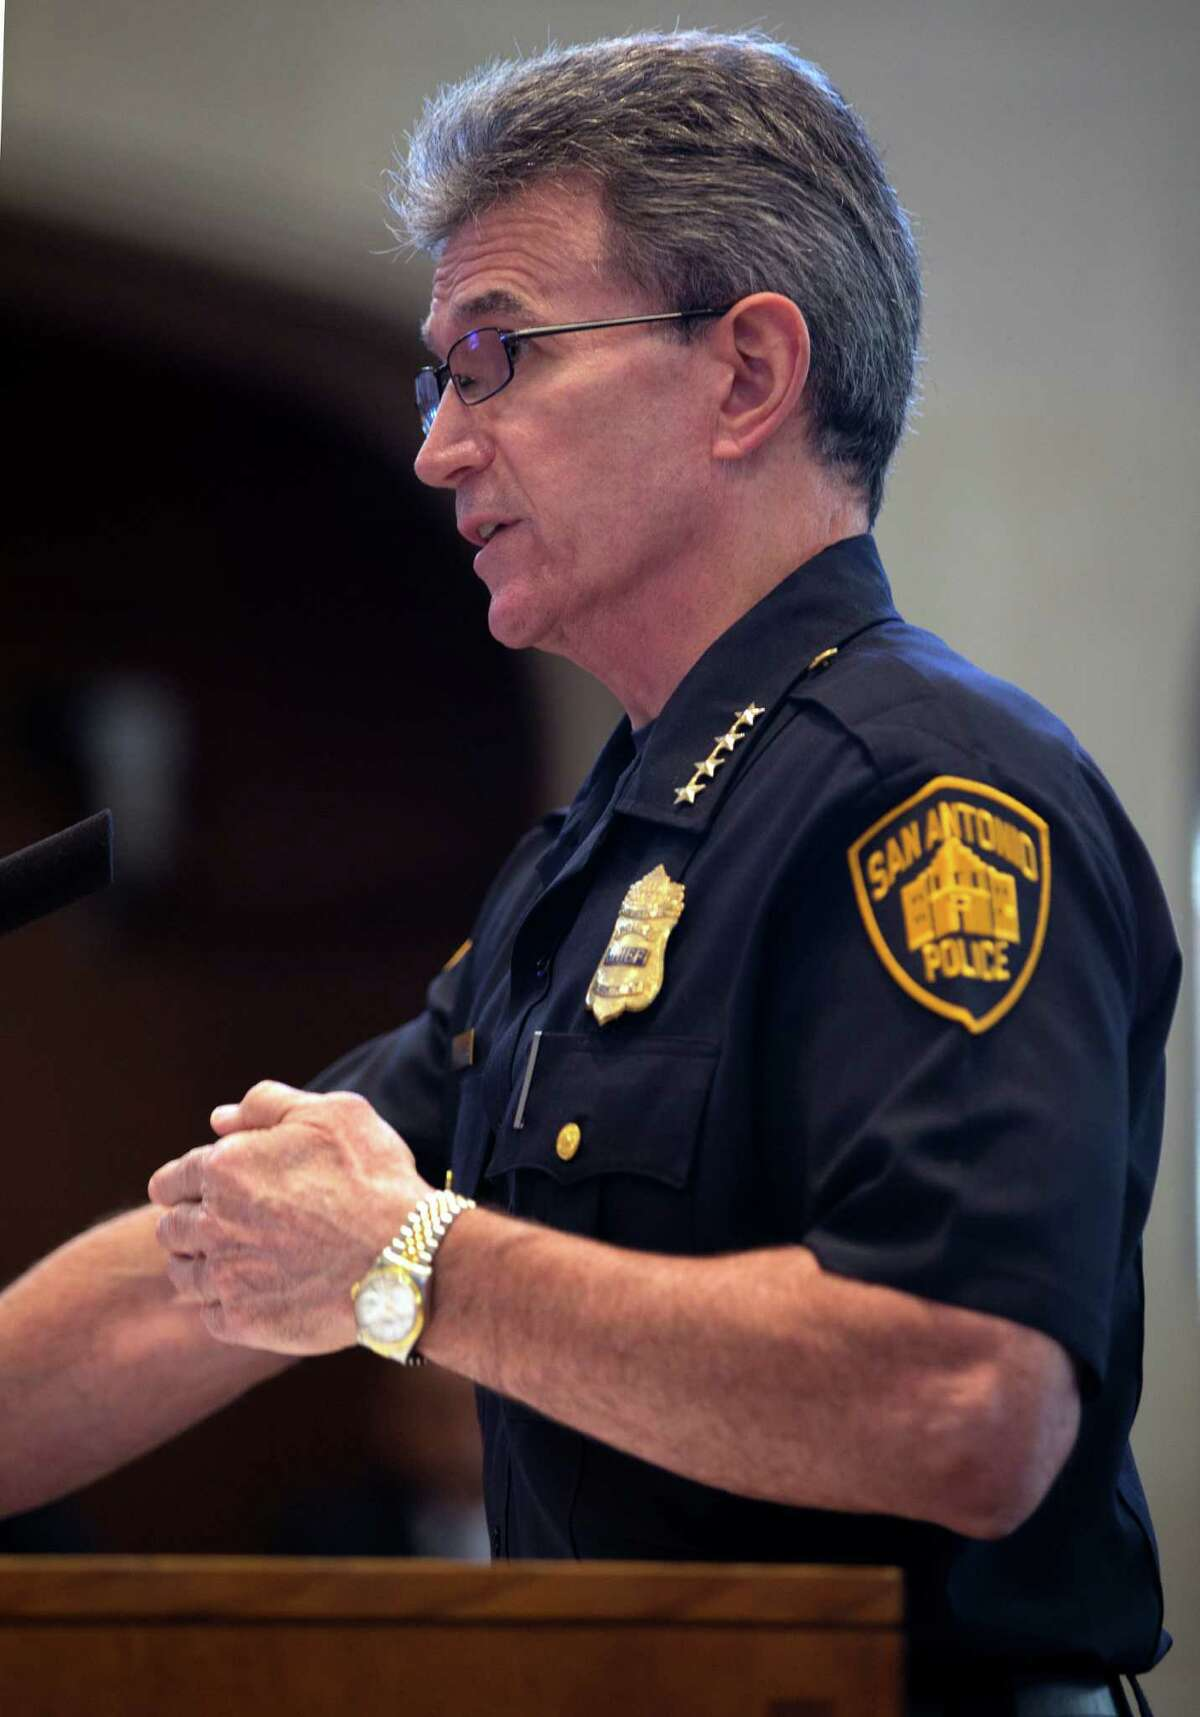 San Antonio police chief William McManus speaks to the city council Thursday morning, Oct. 29, 2015 about police body-worn cameras in advance of the council's unanimous vote to enter into a multi-year contract to equip most officers with the devices.